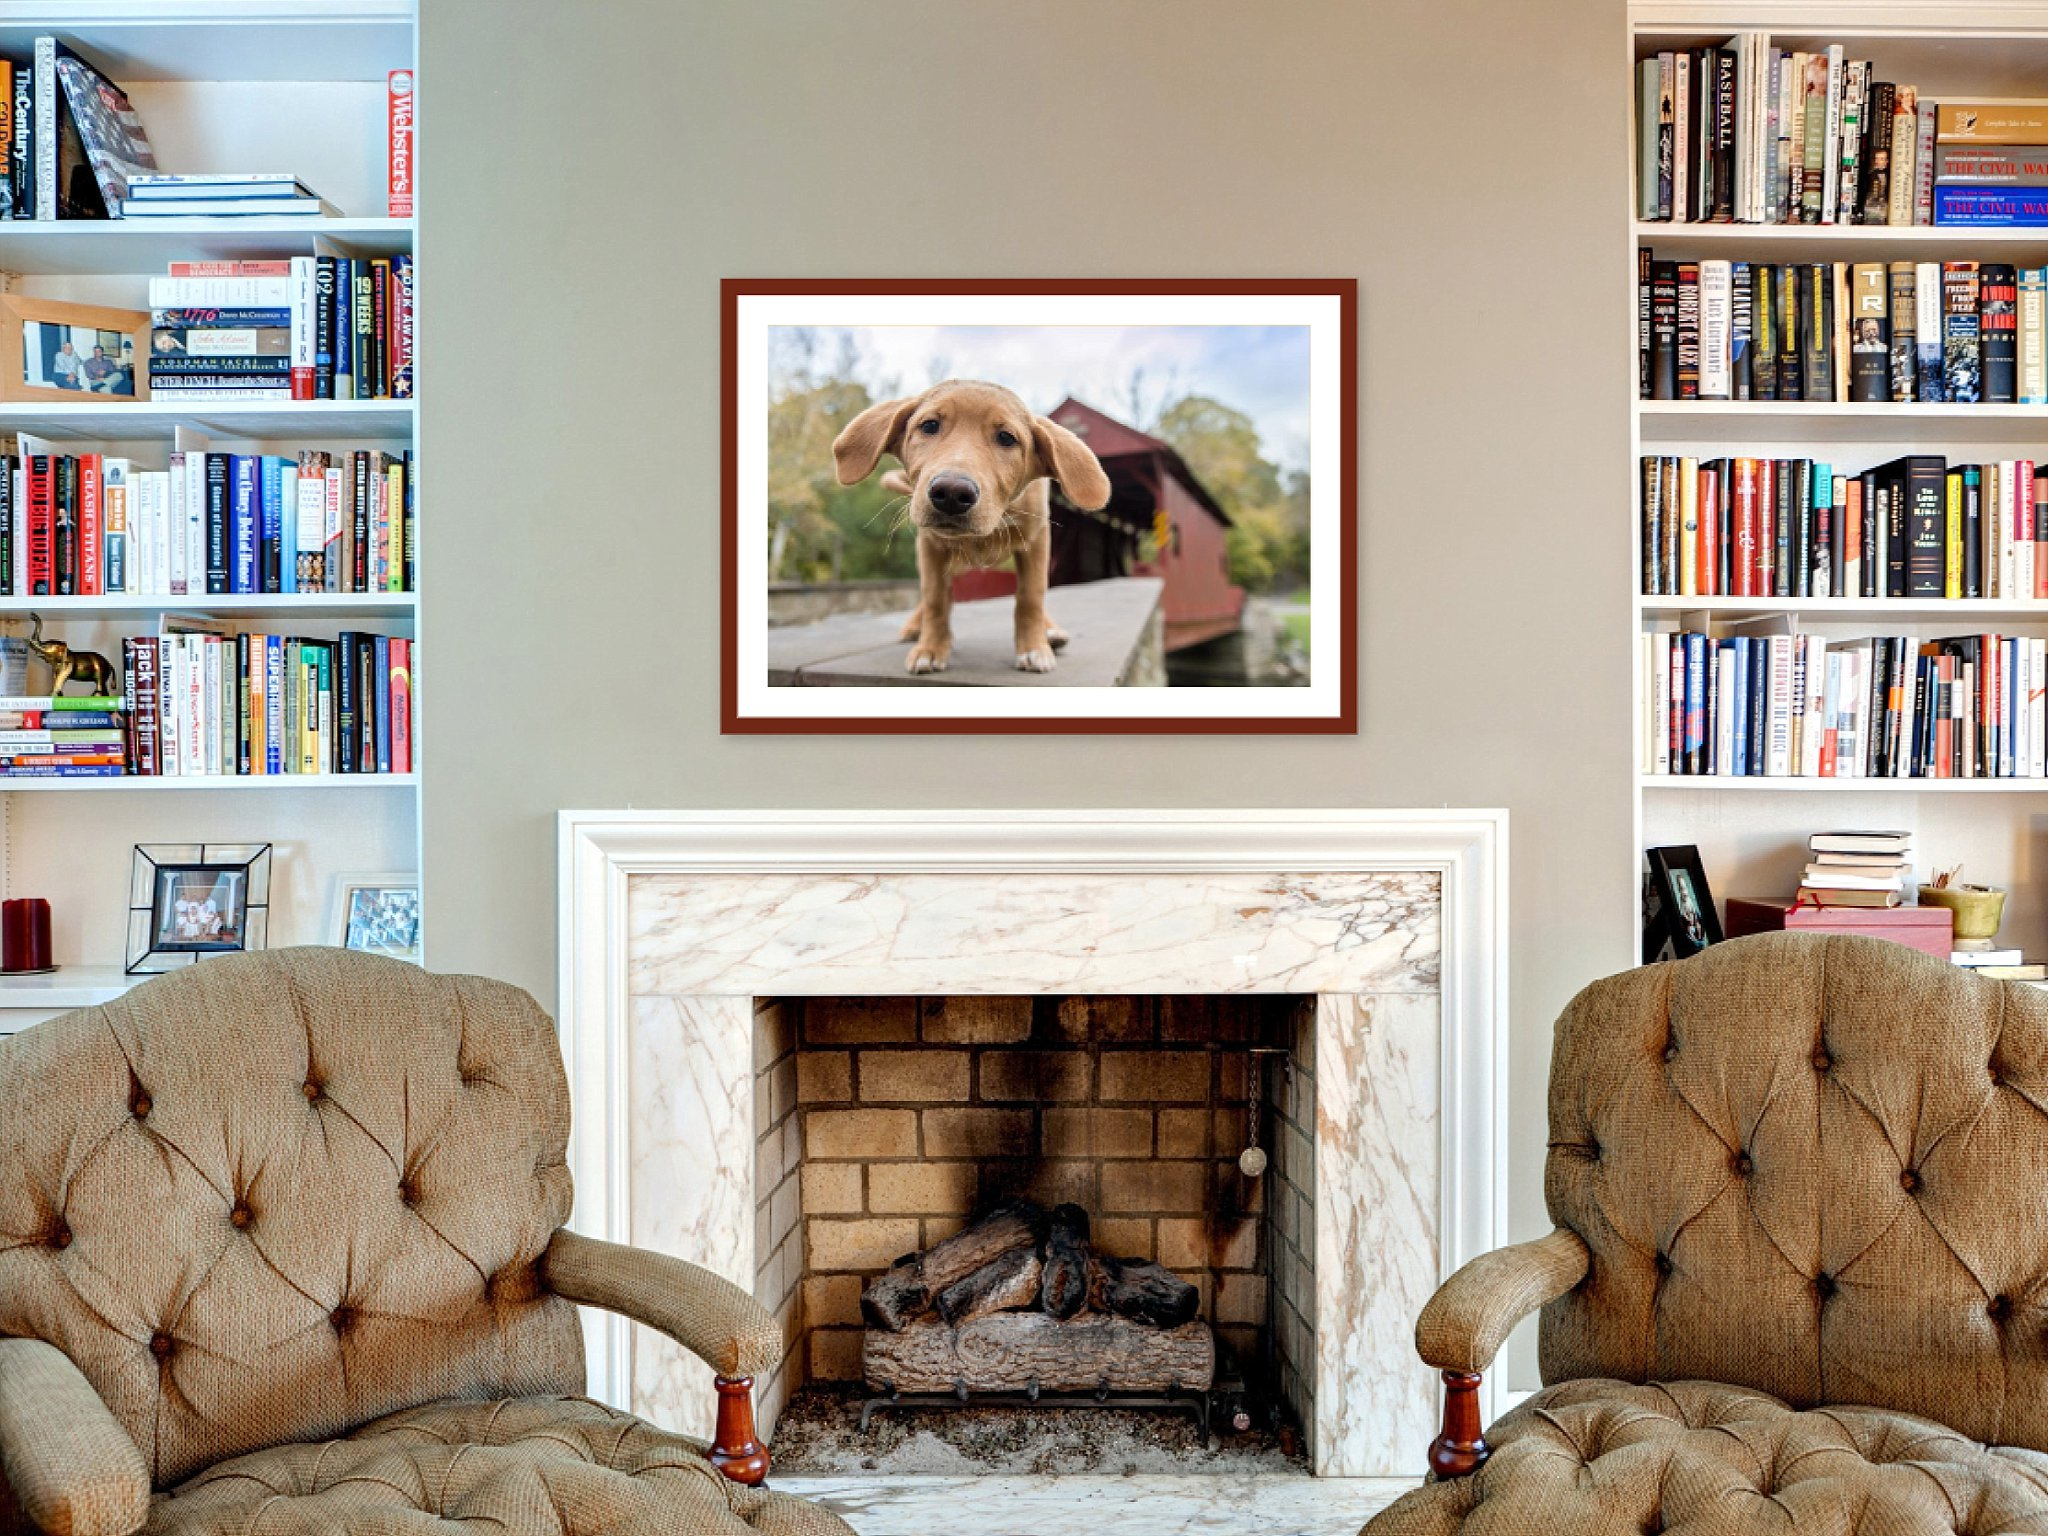 framed puppy portrait above living room fireplace